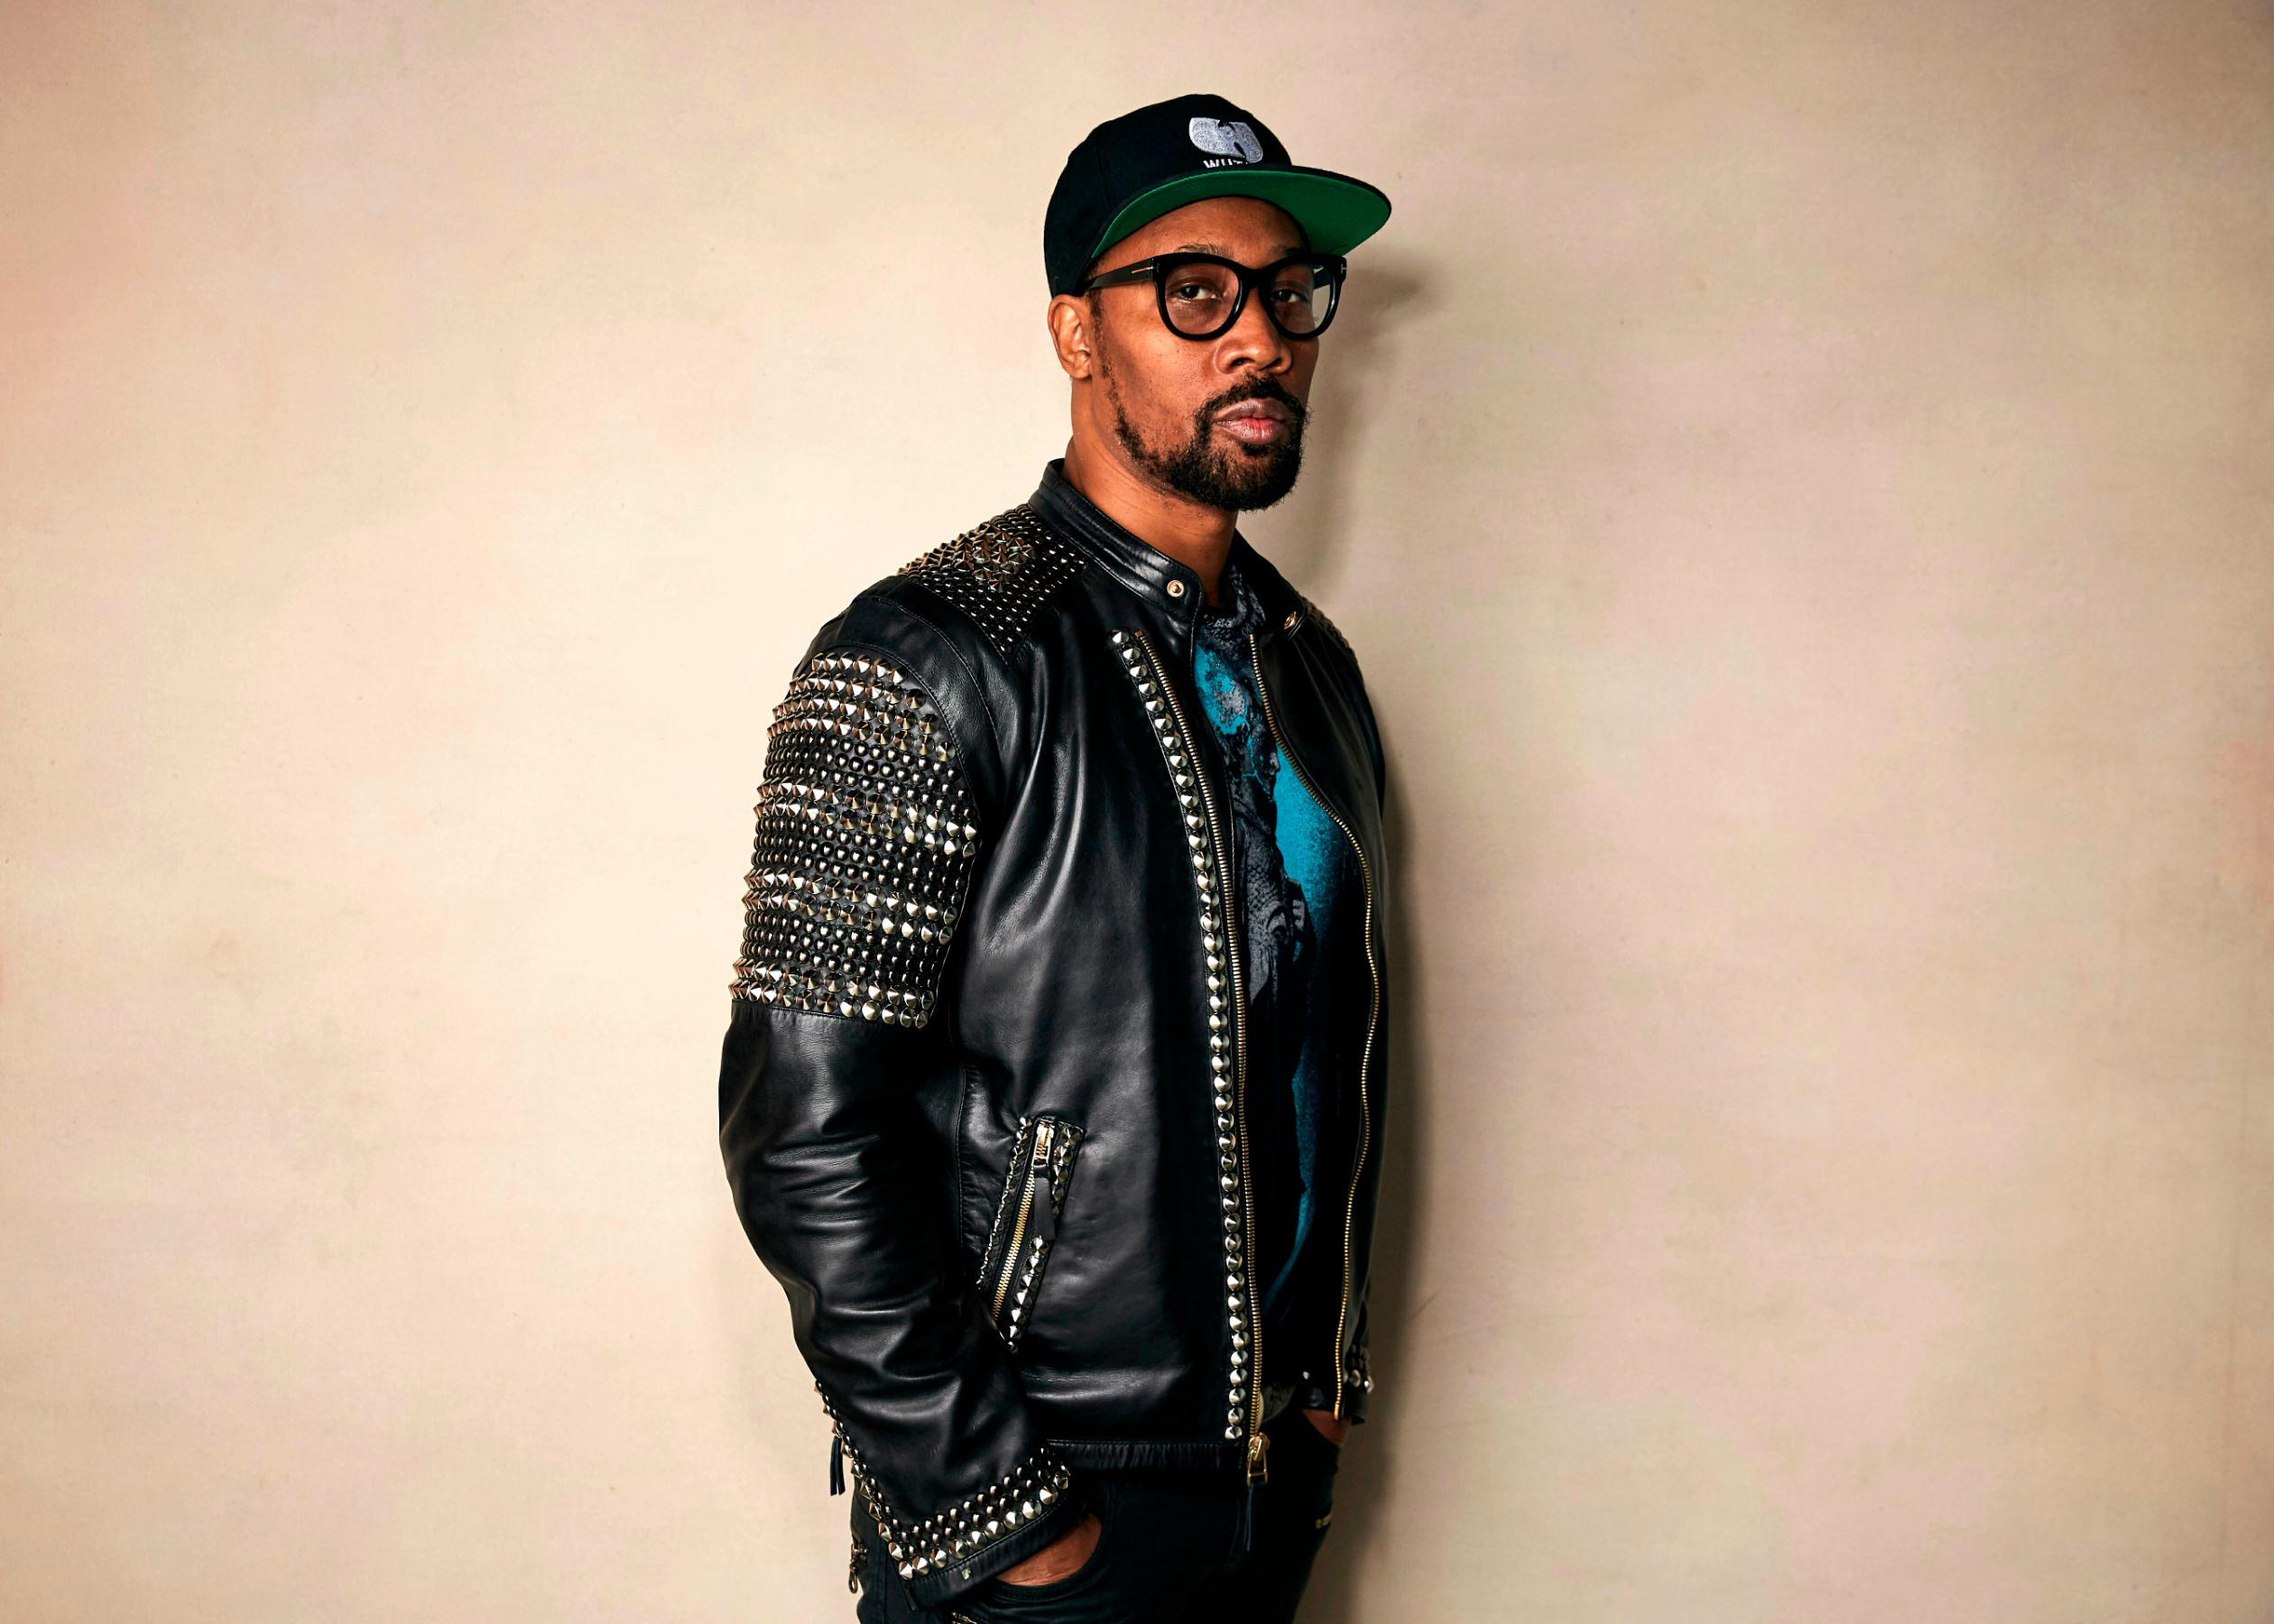 RZA came up with a new ice cream truck jingle because the old one was used in minstrel shows